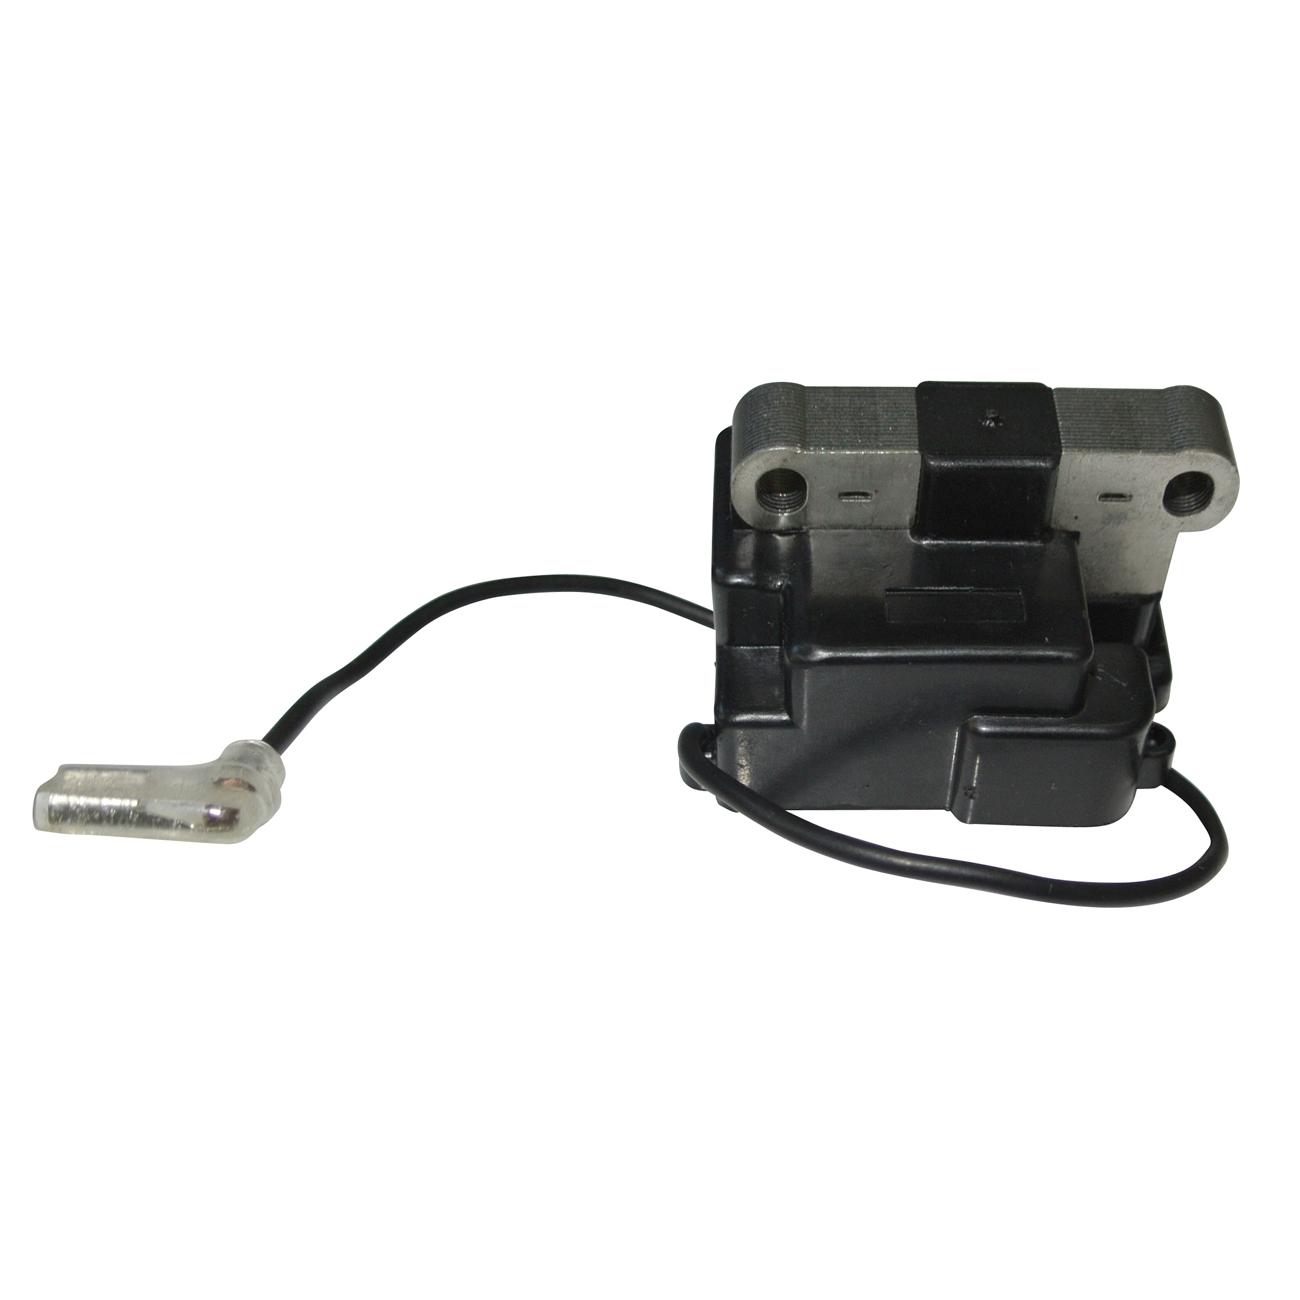 New Ignition Coil Moudle Assy fit 3WF-3/6 1E40FP-3Z Backpack Mist Duster EngineNew Ignition Coil Moudle Assy fit 3WF-3/6 1E40FP-3Z Backpack Mist Duster Engine